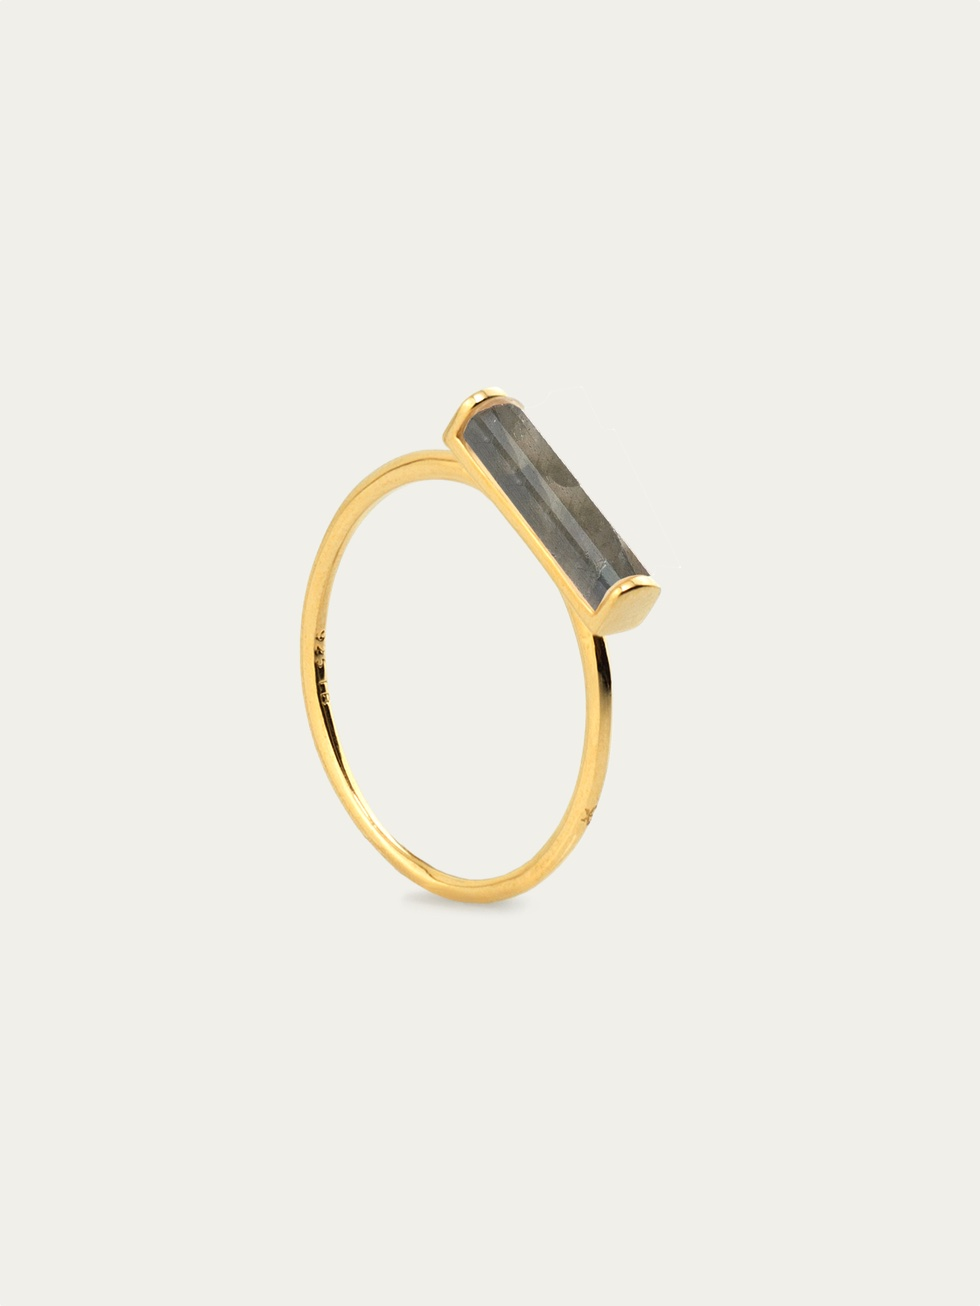 TUB LAB gold ring